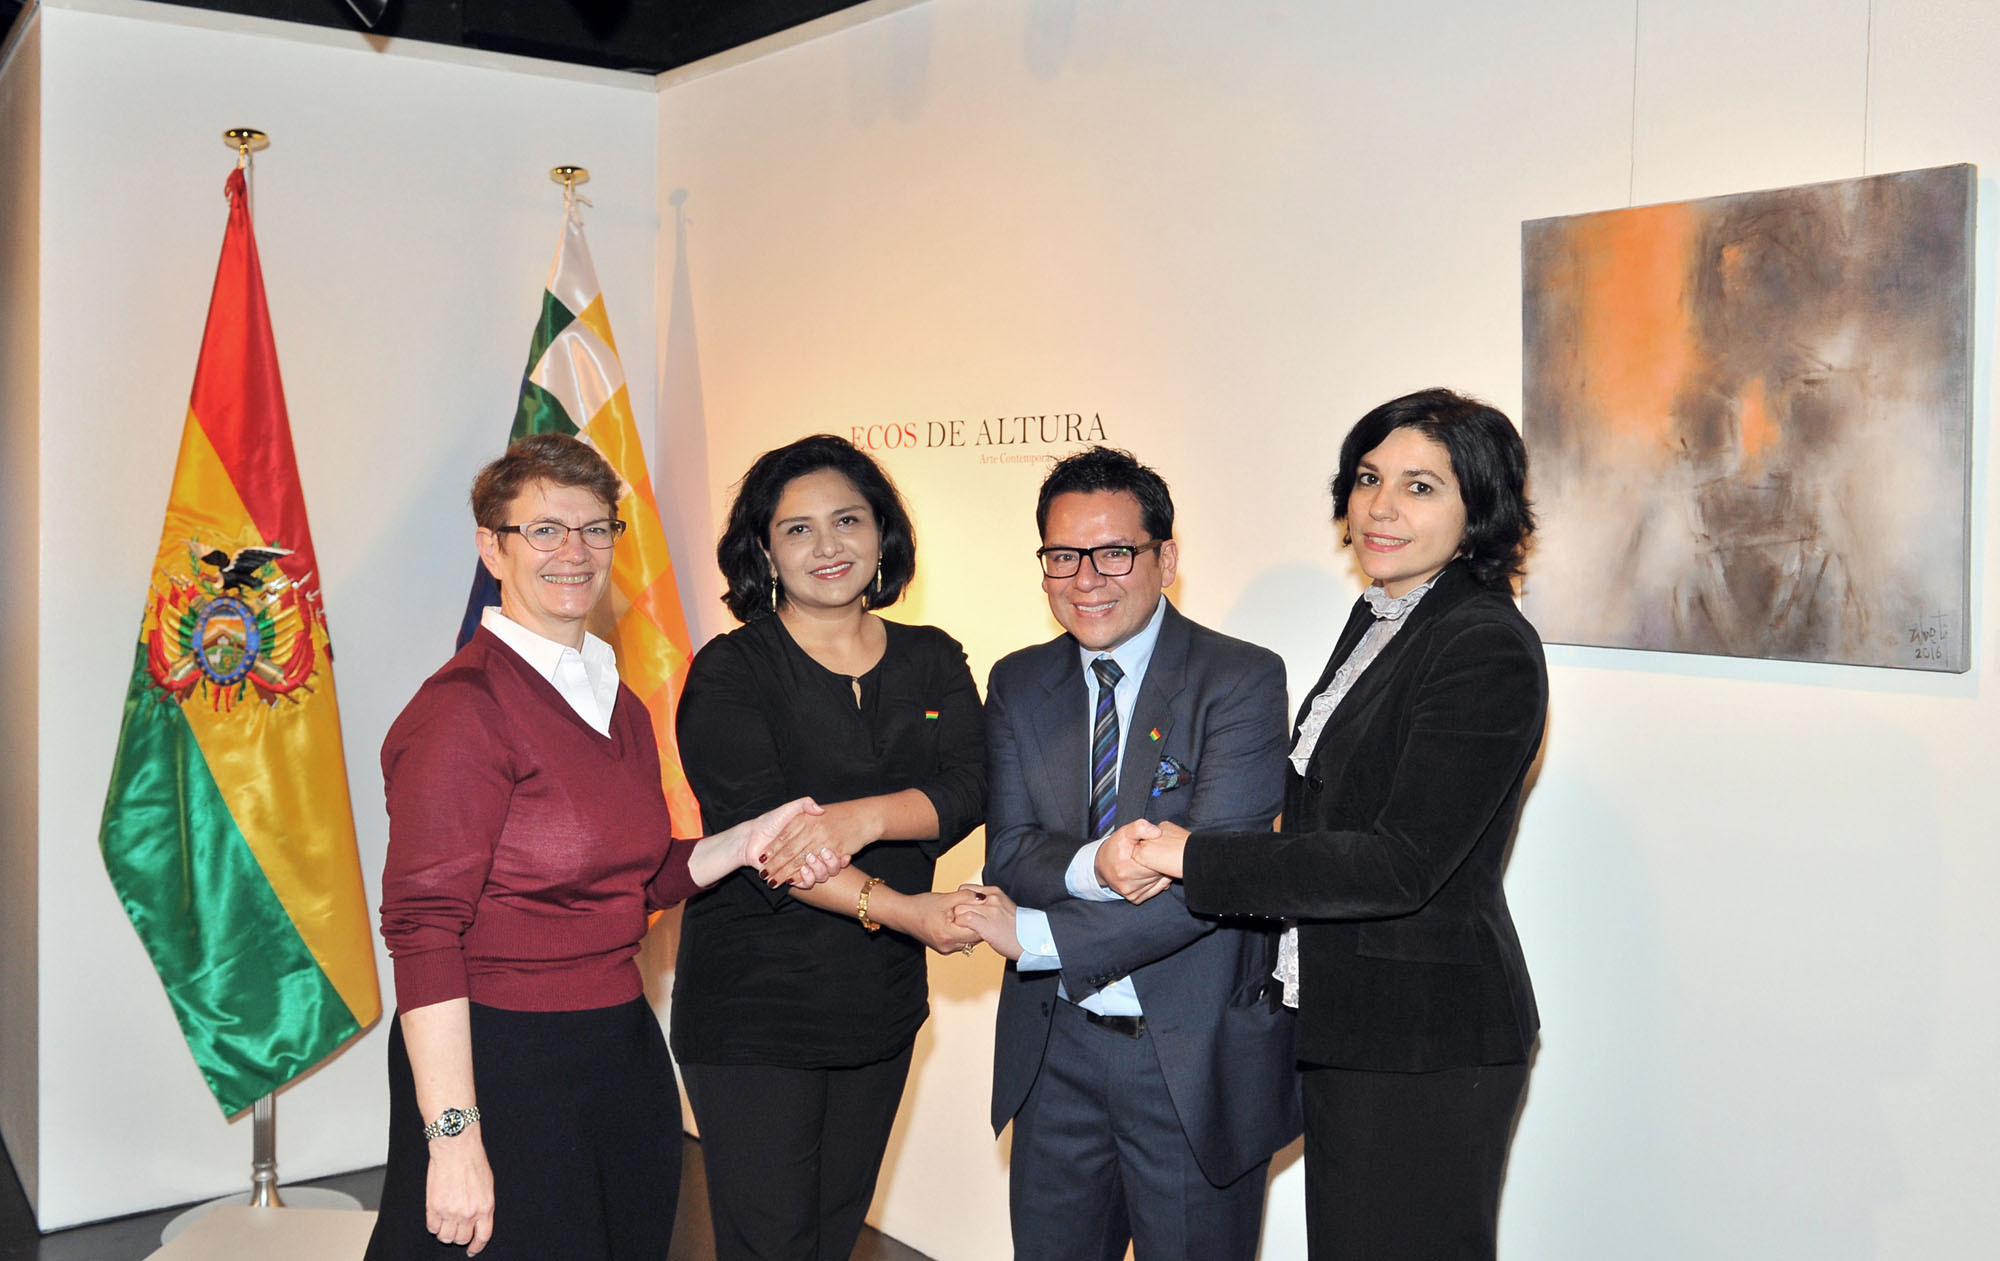 "Bolivia's Charge d'Affaires a.i. Angela Ayllon (second from left), exhibition curator Dante Chumacero (second from right), Instituto Cervantes Tokio administrator Maria Luisa Carranza (left) and Cultural Manager Teresa Iniesta (right) join hands at the opening ceremony of the ""ECOS DE ALTURE: ARTE BOLIVIANO DESDE OTRAS TIERRAS"" (Echoes from the highlands: Bolivian art from other lands) contemporary art exhibition, which runs through March 22, at Instituto Cervantes Tokio on March 2. 